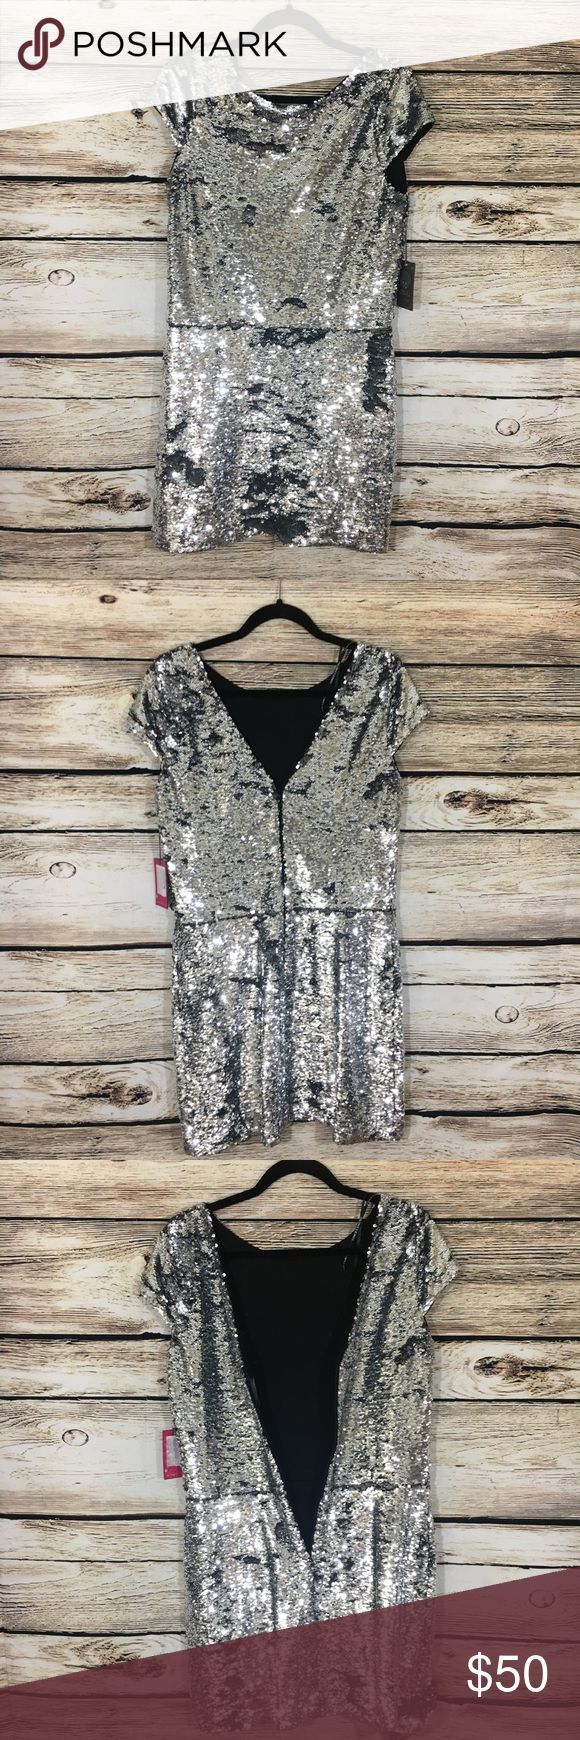 """Vince Camuto sequin silver mini party dress 10 Vince Camuto sequin, silver mini dress, perfect for any party or night out! It has a back seam zip, above knee length, women's size 10, bust 36"""", length 37"""" Vince Camuto Dresses Mini"""